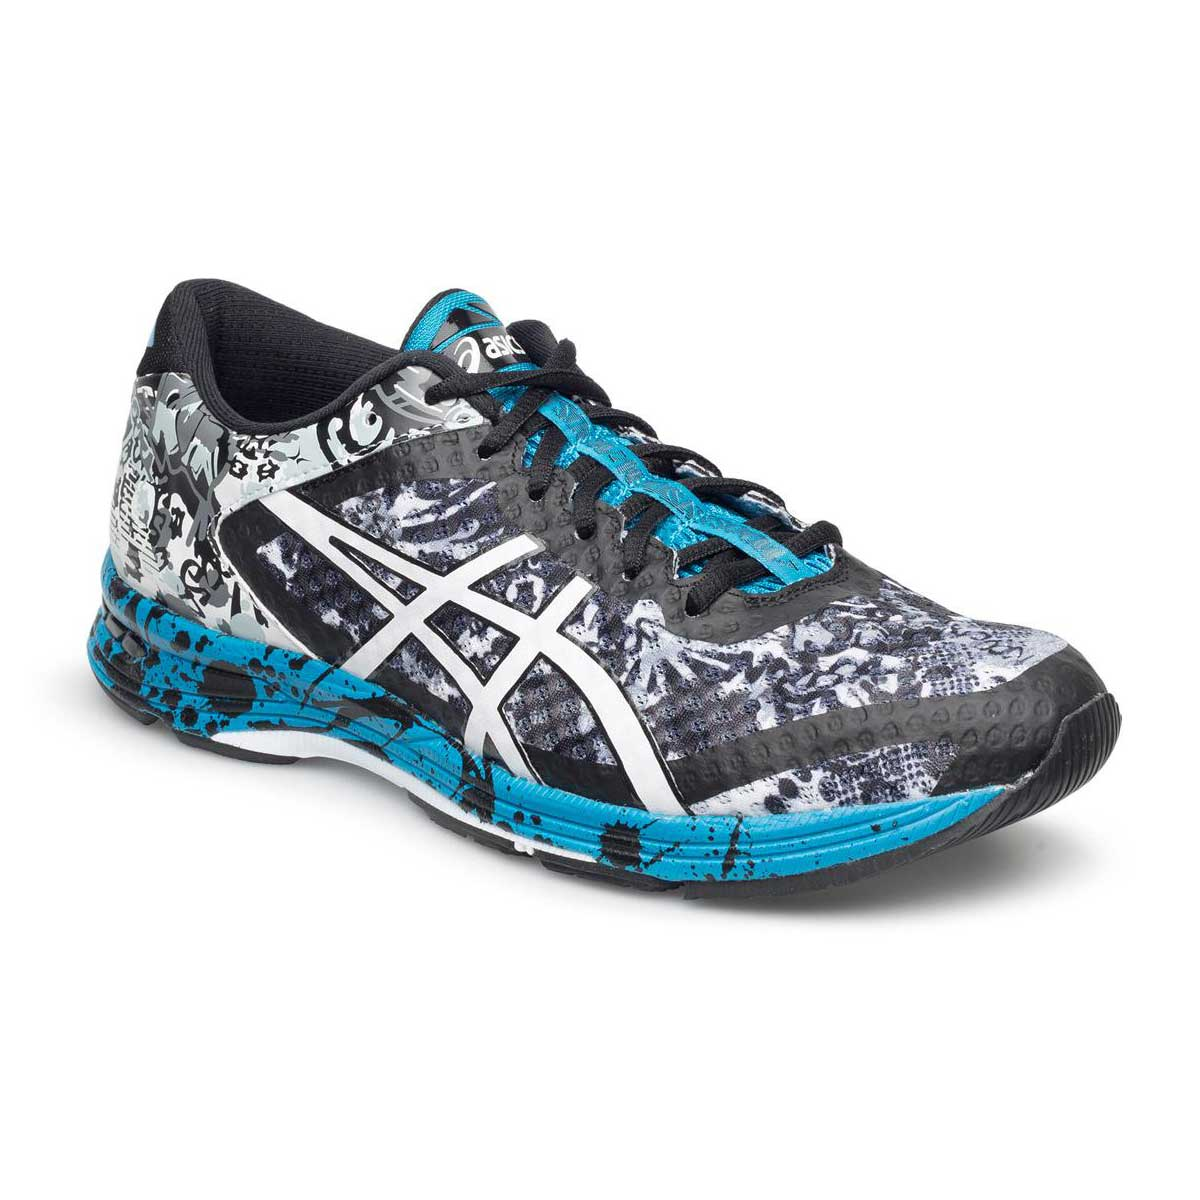 c6d2811188ef Buy Asics Gel-Noosa Tri 11 Running Shoes (Midgrey White) Online